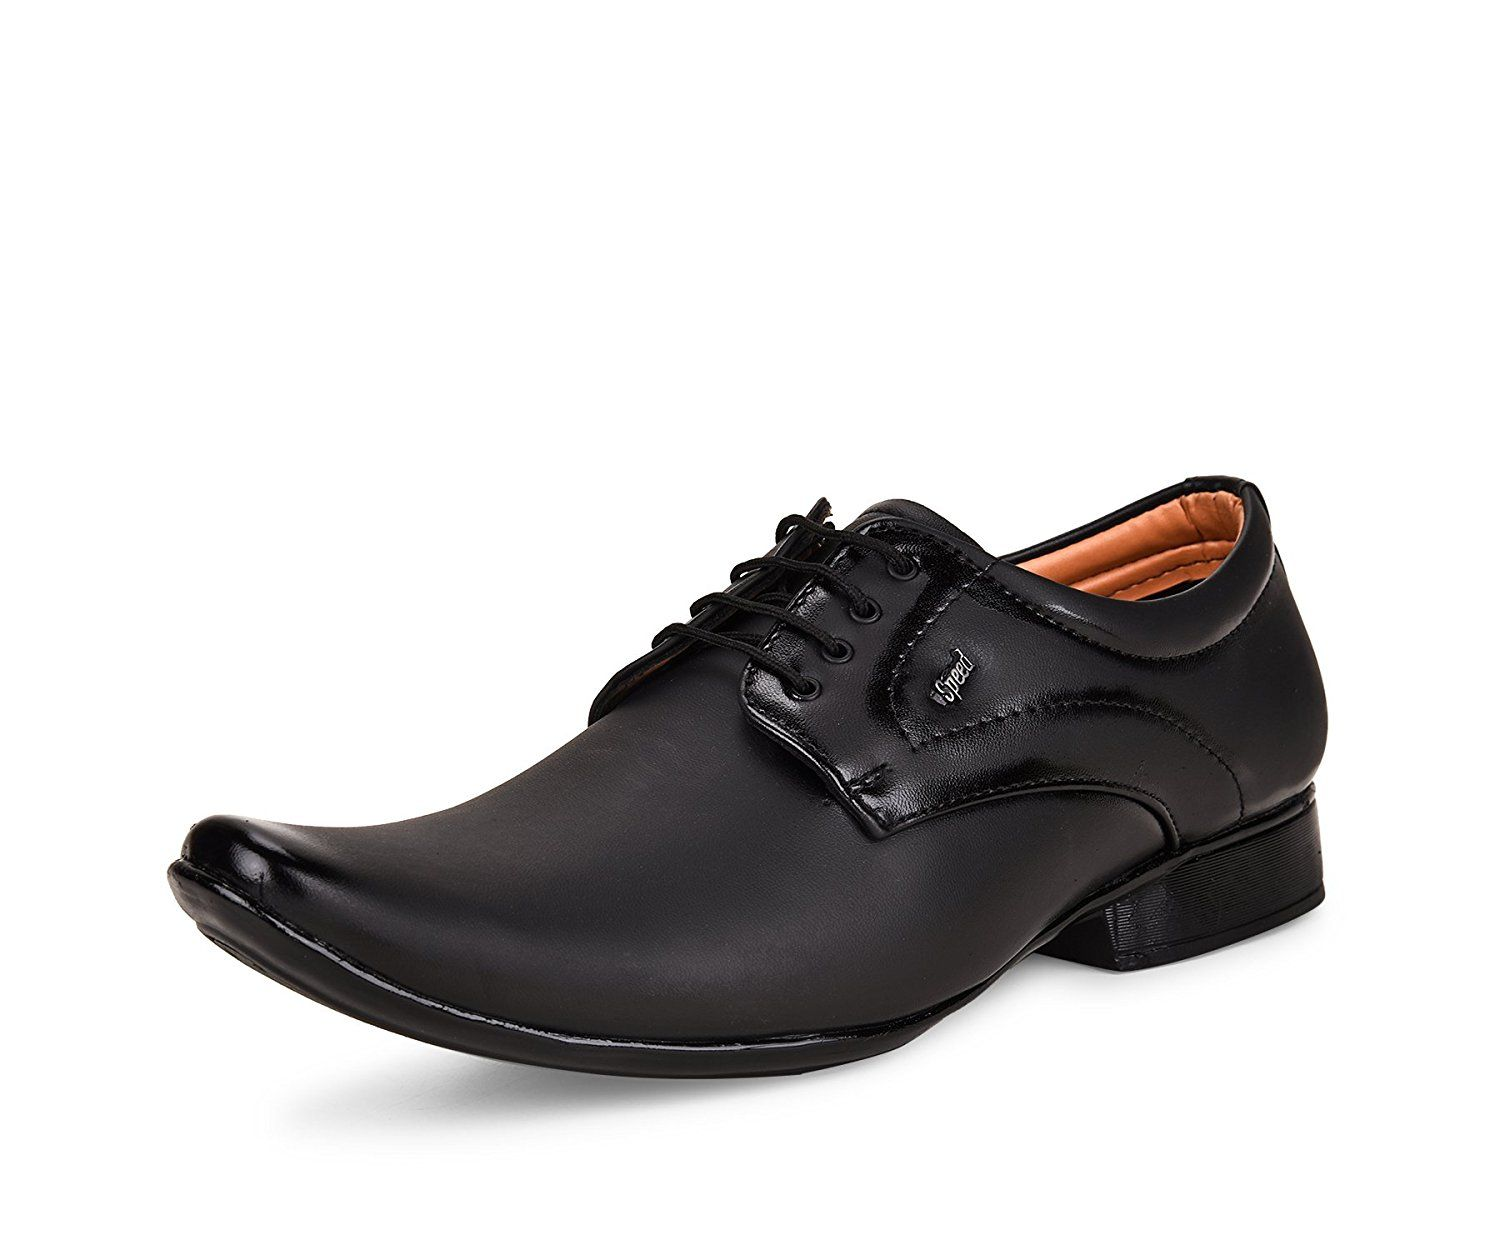 Essence Men's Black Formal Synthetic Lace-Up Shoes: Buy Online at Low  Prices in India - Amazon.in